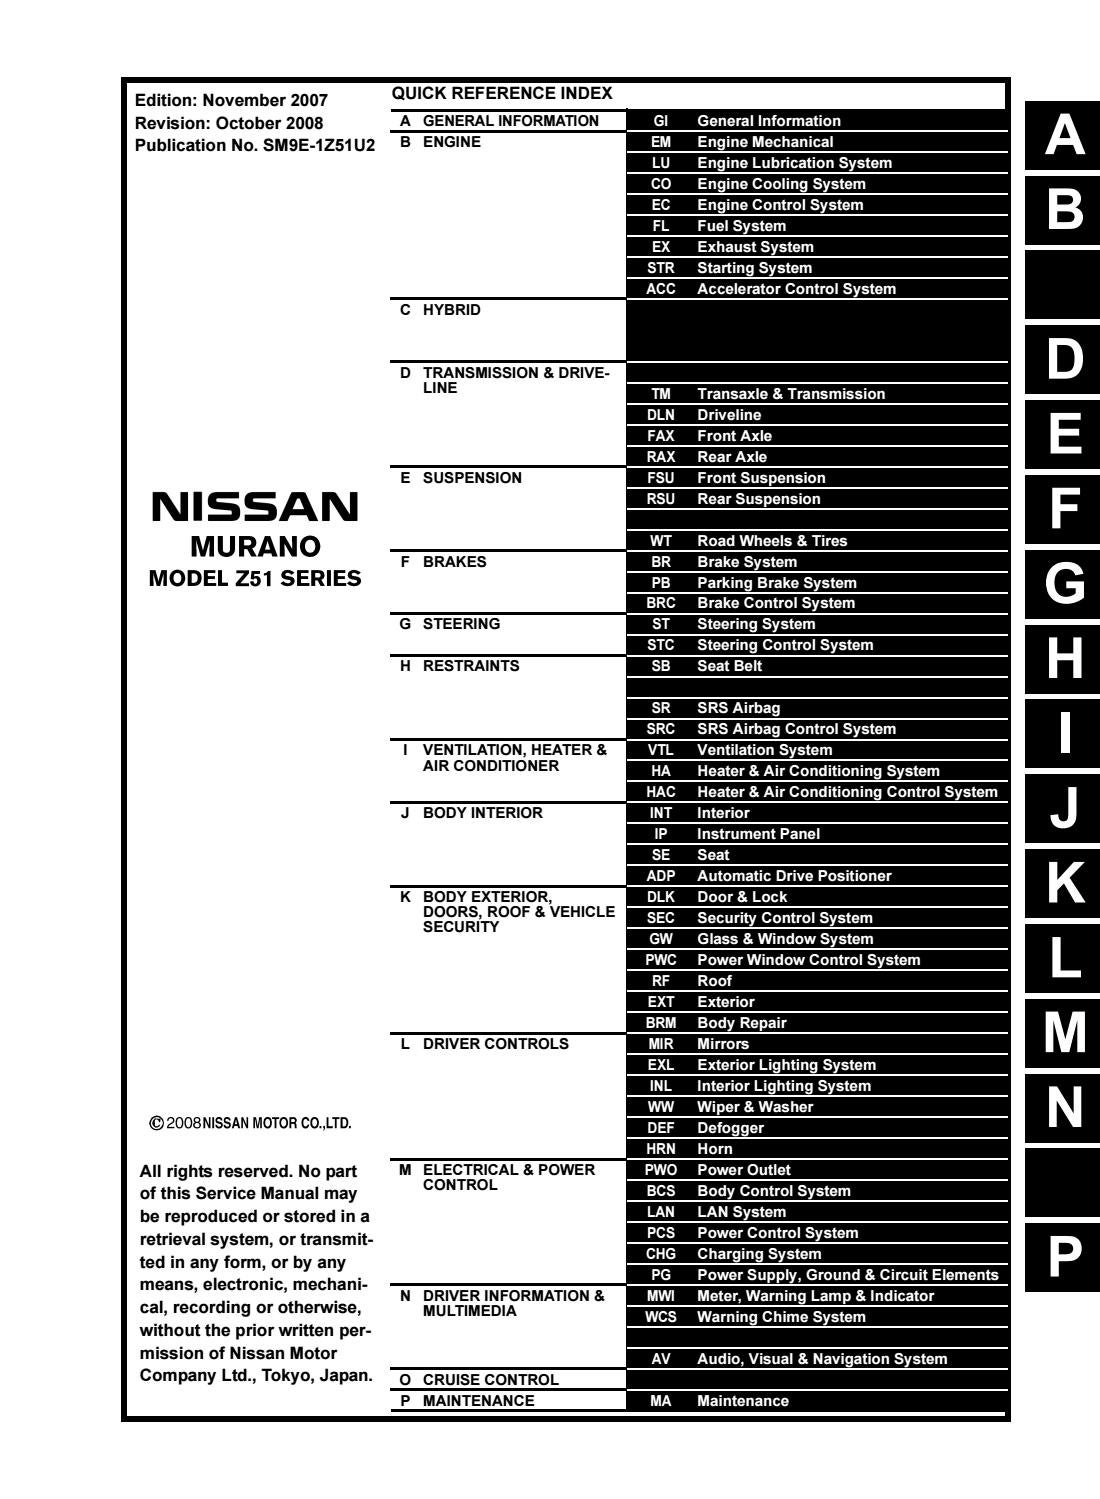 2009 Nissan Murano Service Repair Manual By 163215 Issuu